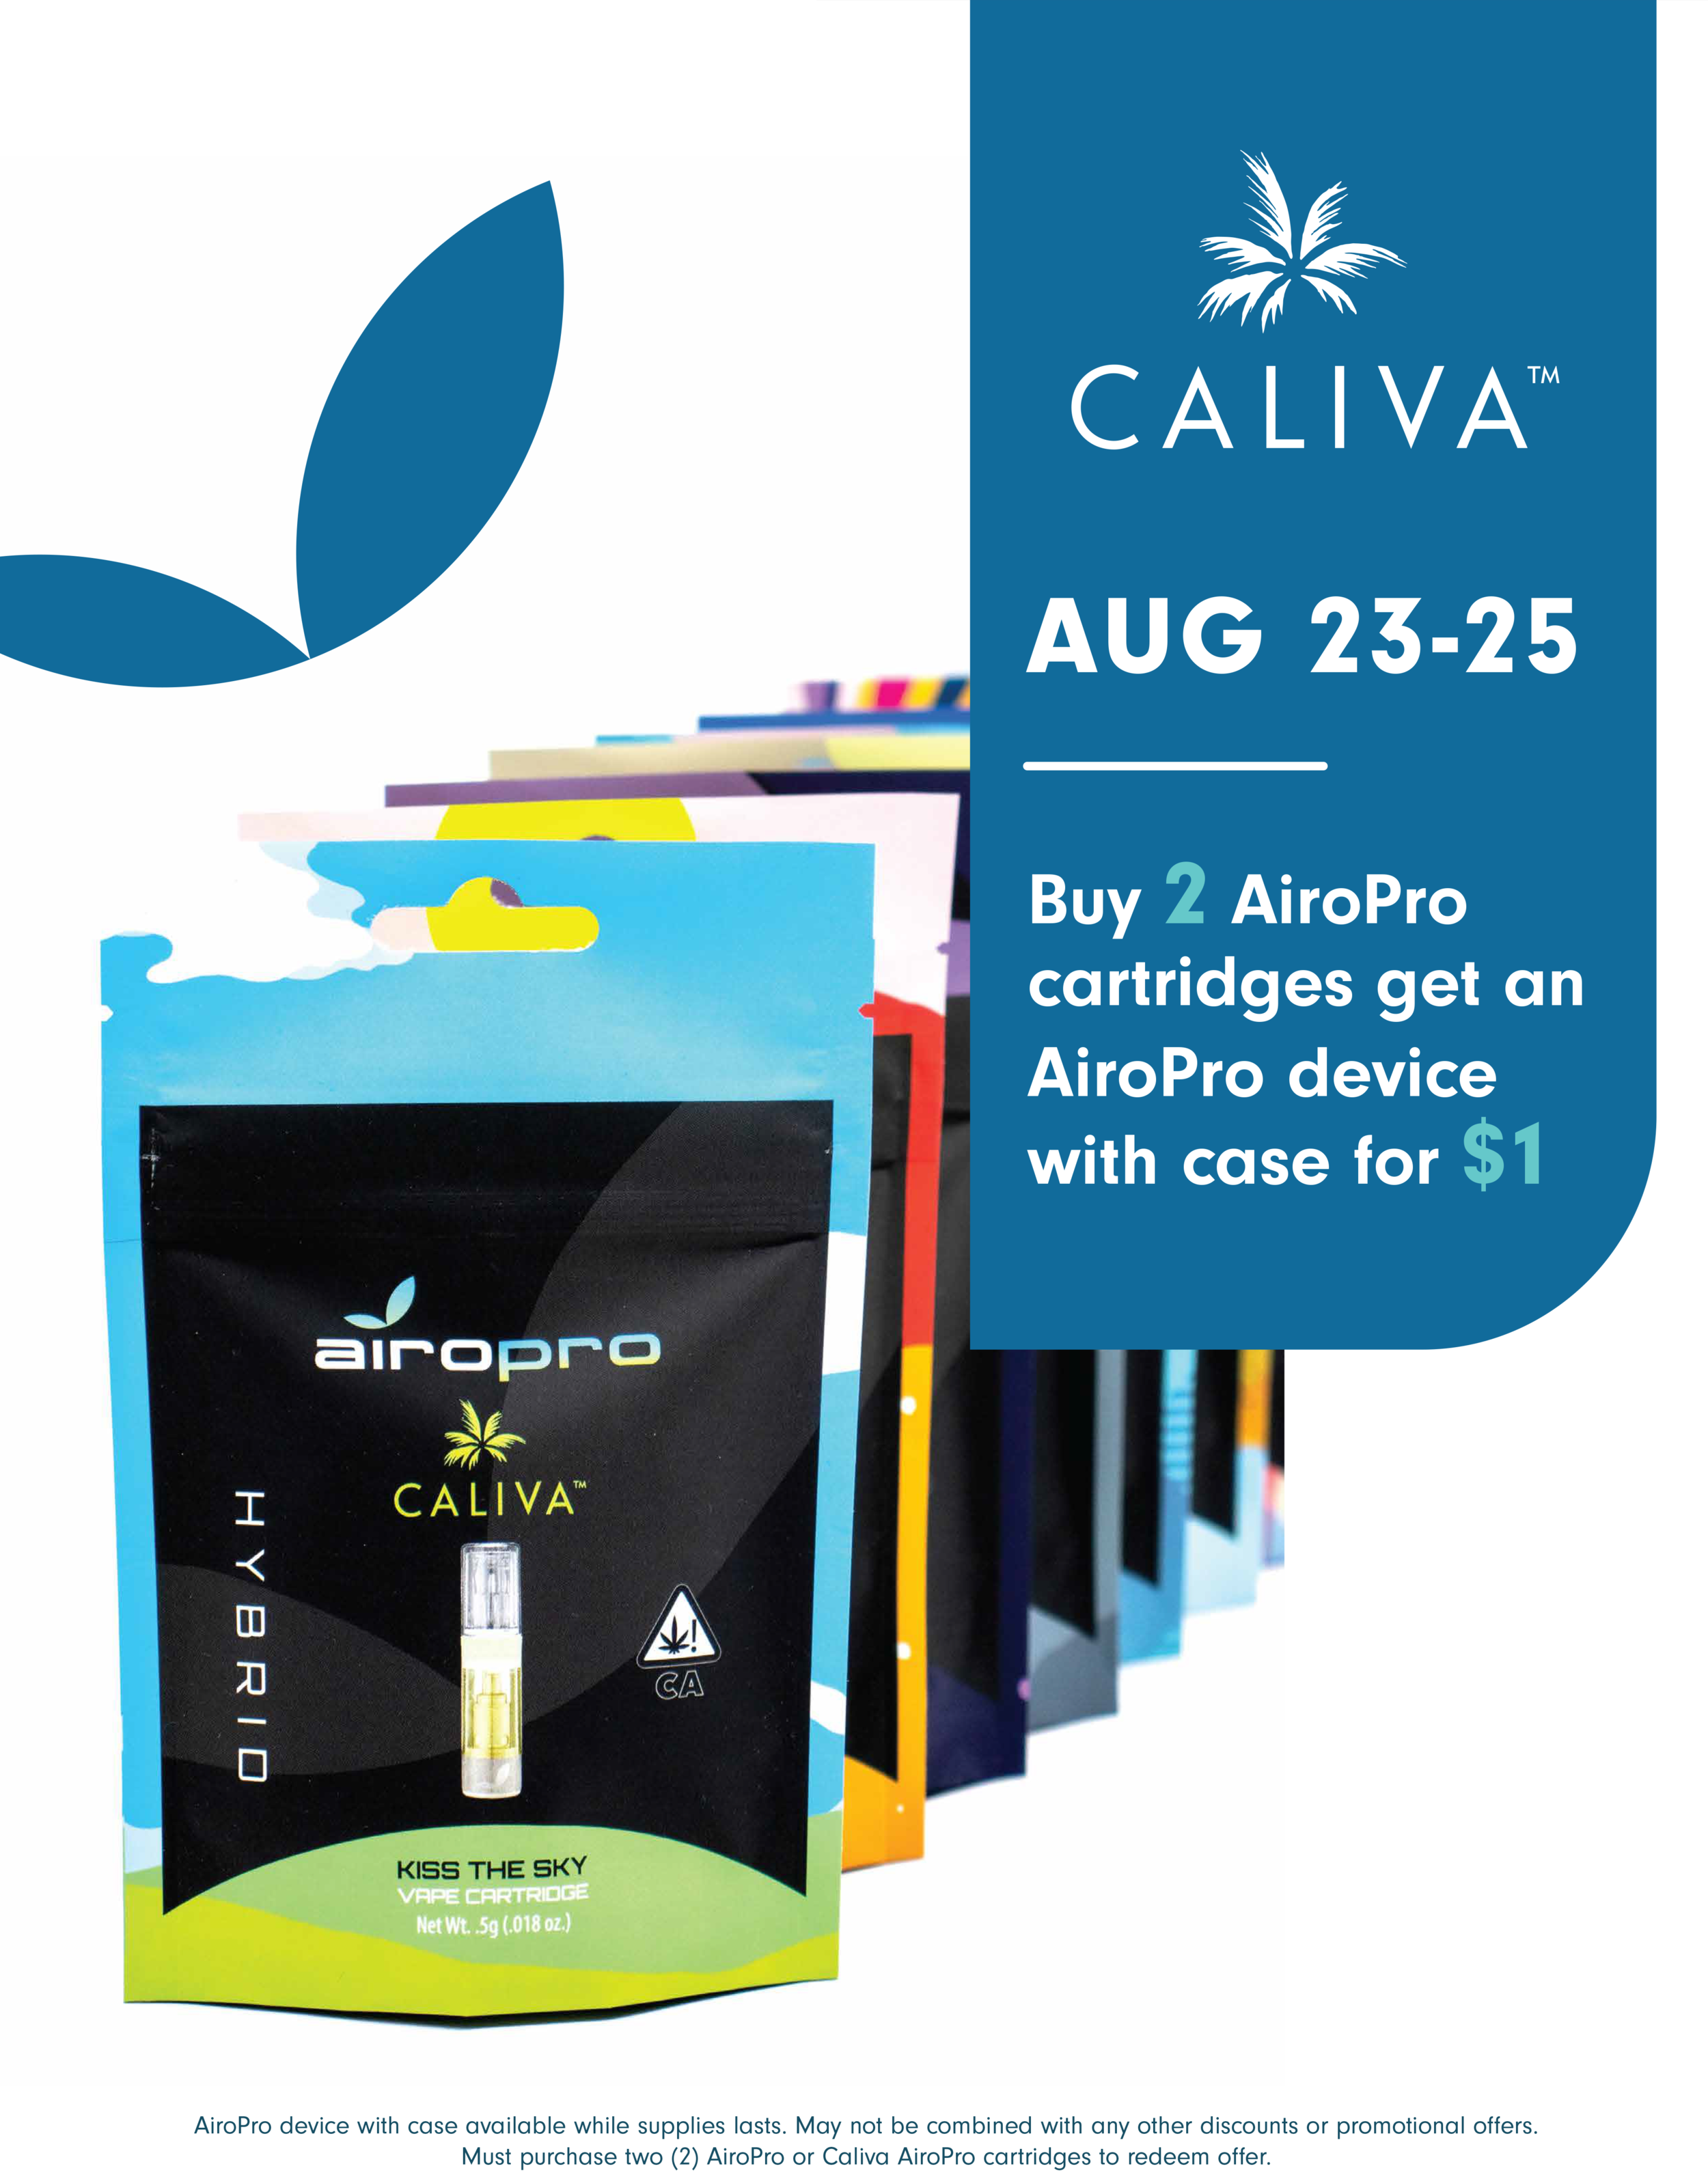 AiroPro_Promo_8.23_8.25.png